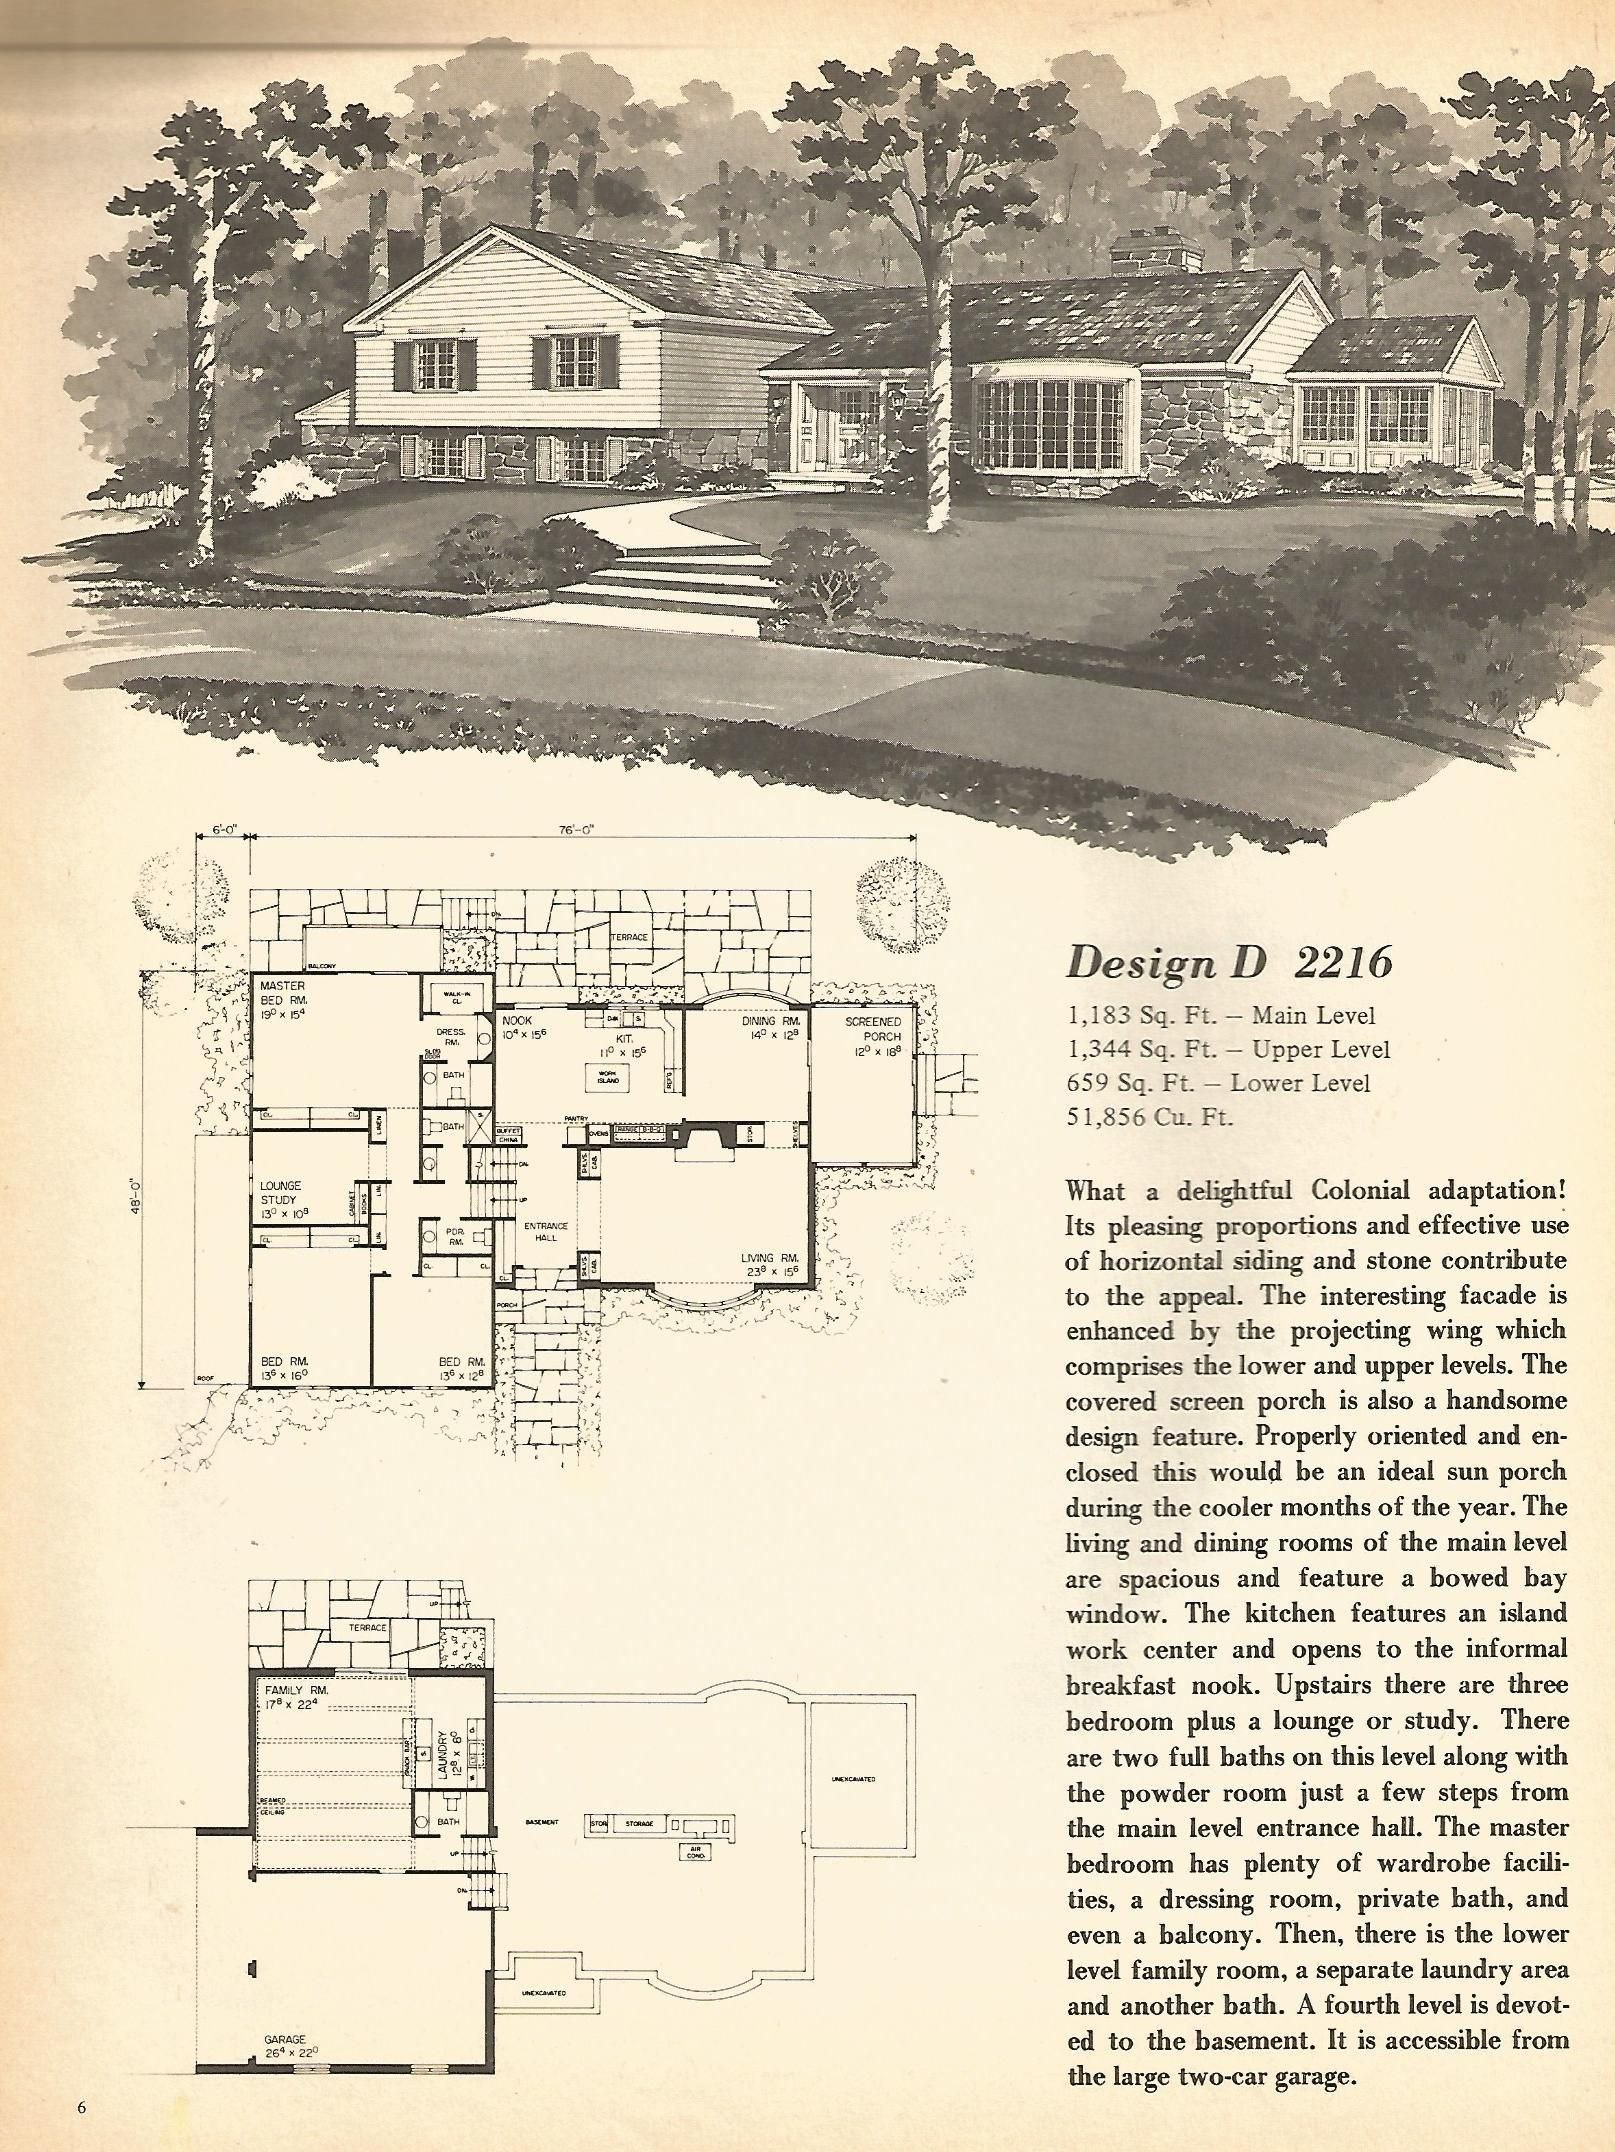 Vintage House Plans Multi Level Homes Part 1 Vintage House Plans Vintage House Spanish Style Homes